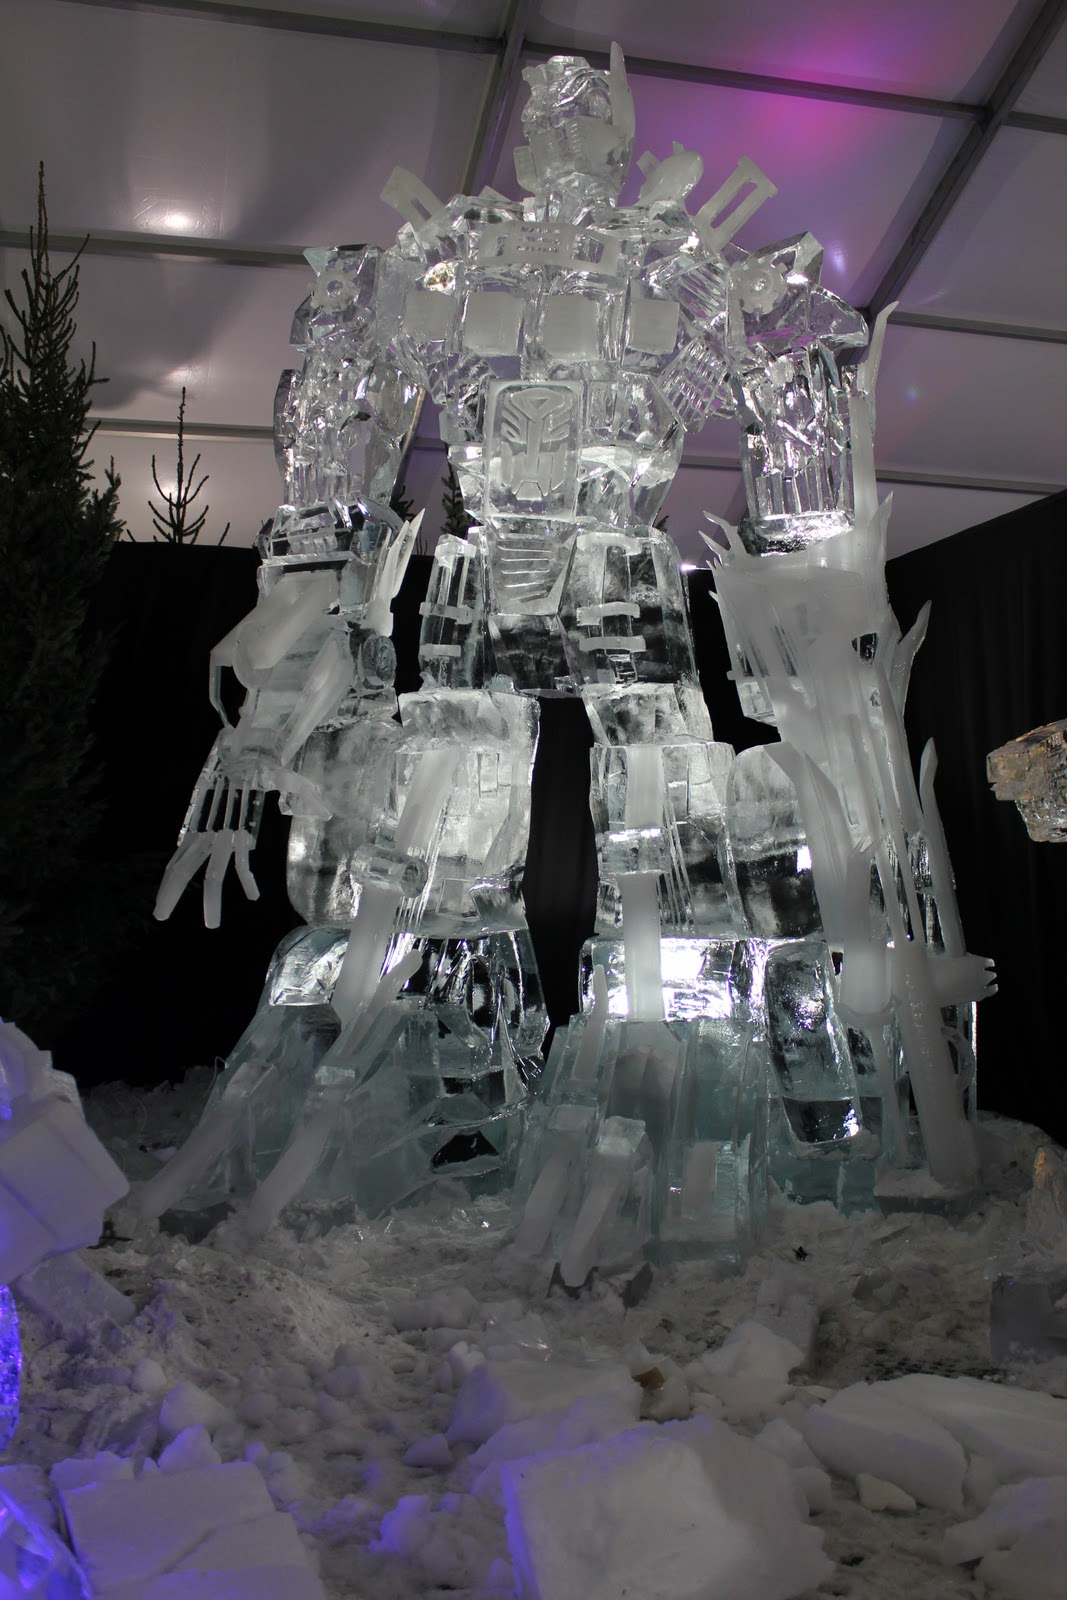 Transformers Ice Sculpture